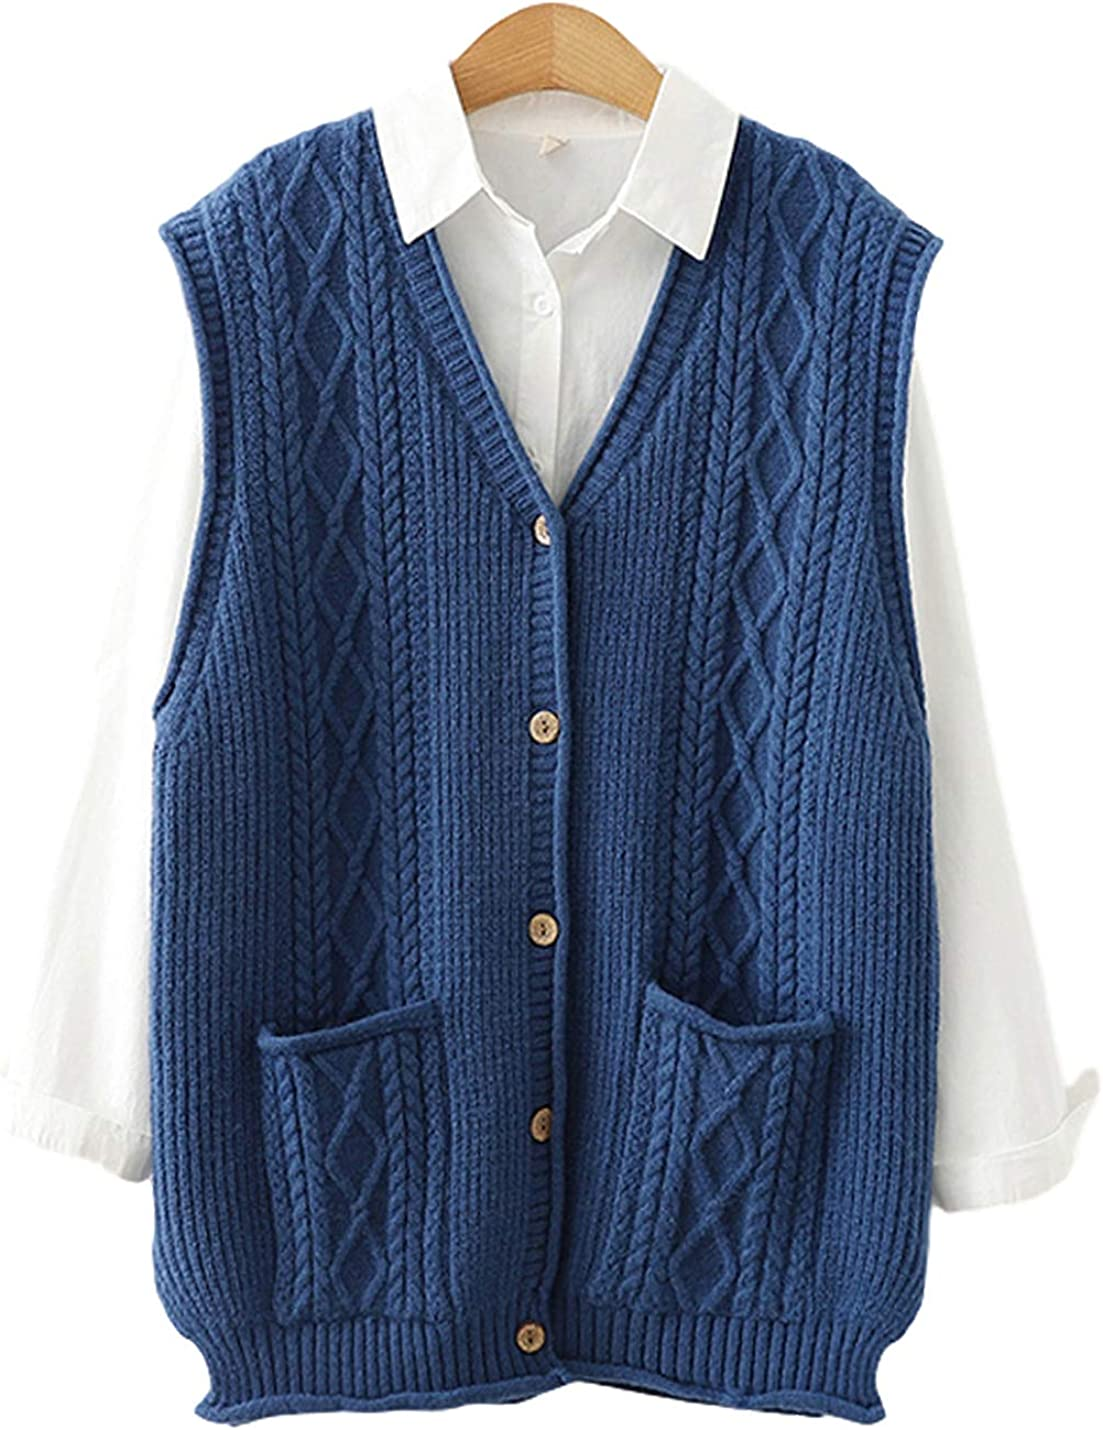 Gihuo Womens Button Down Cable Knit Sweater Vest Sleeveless Cardigan